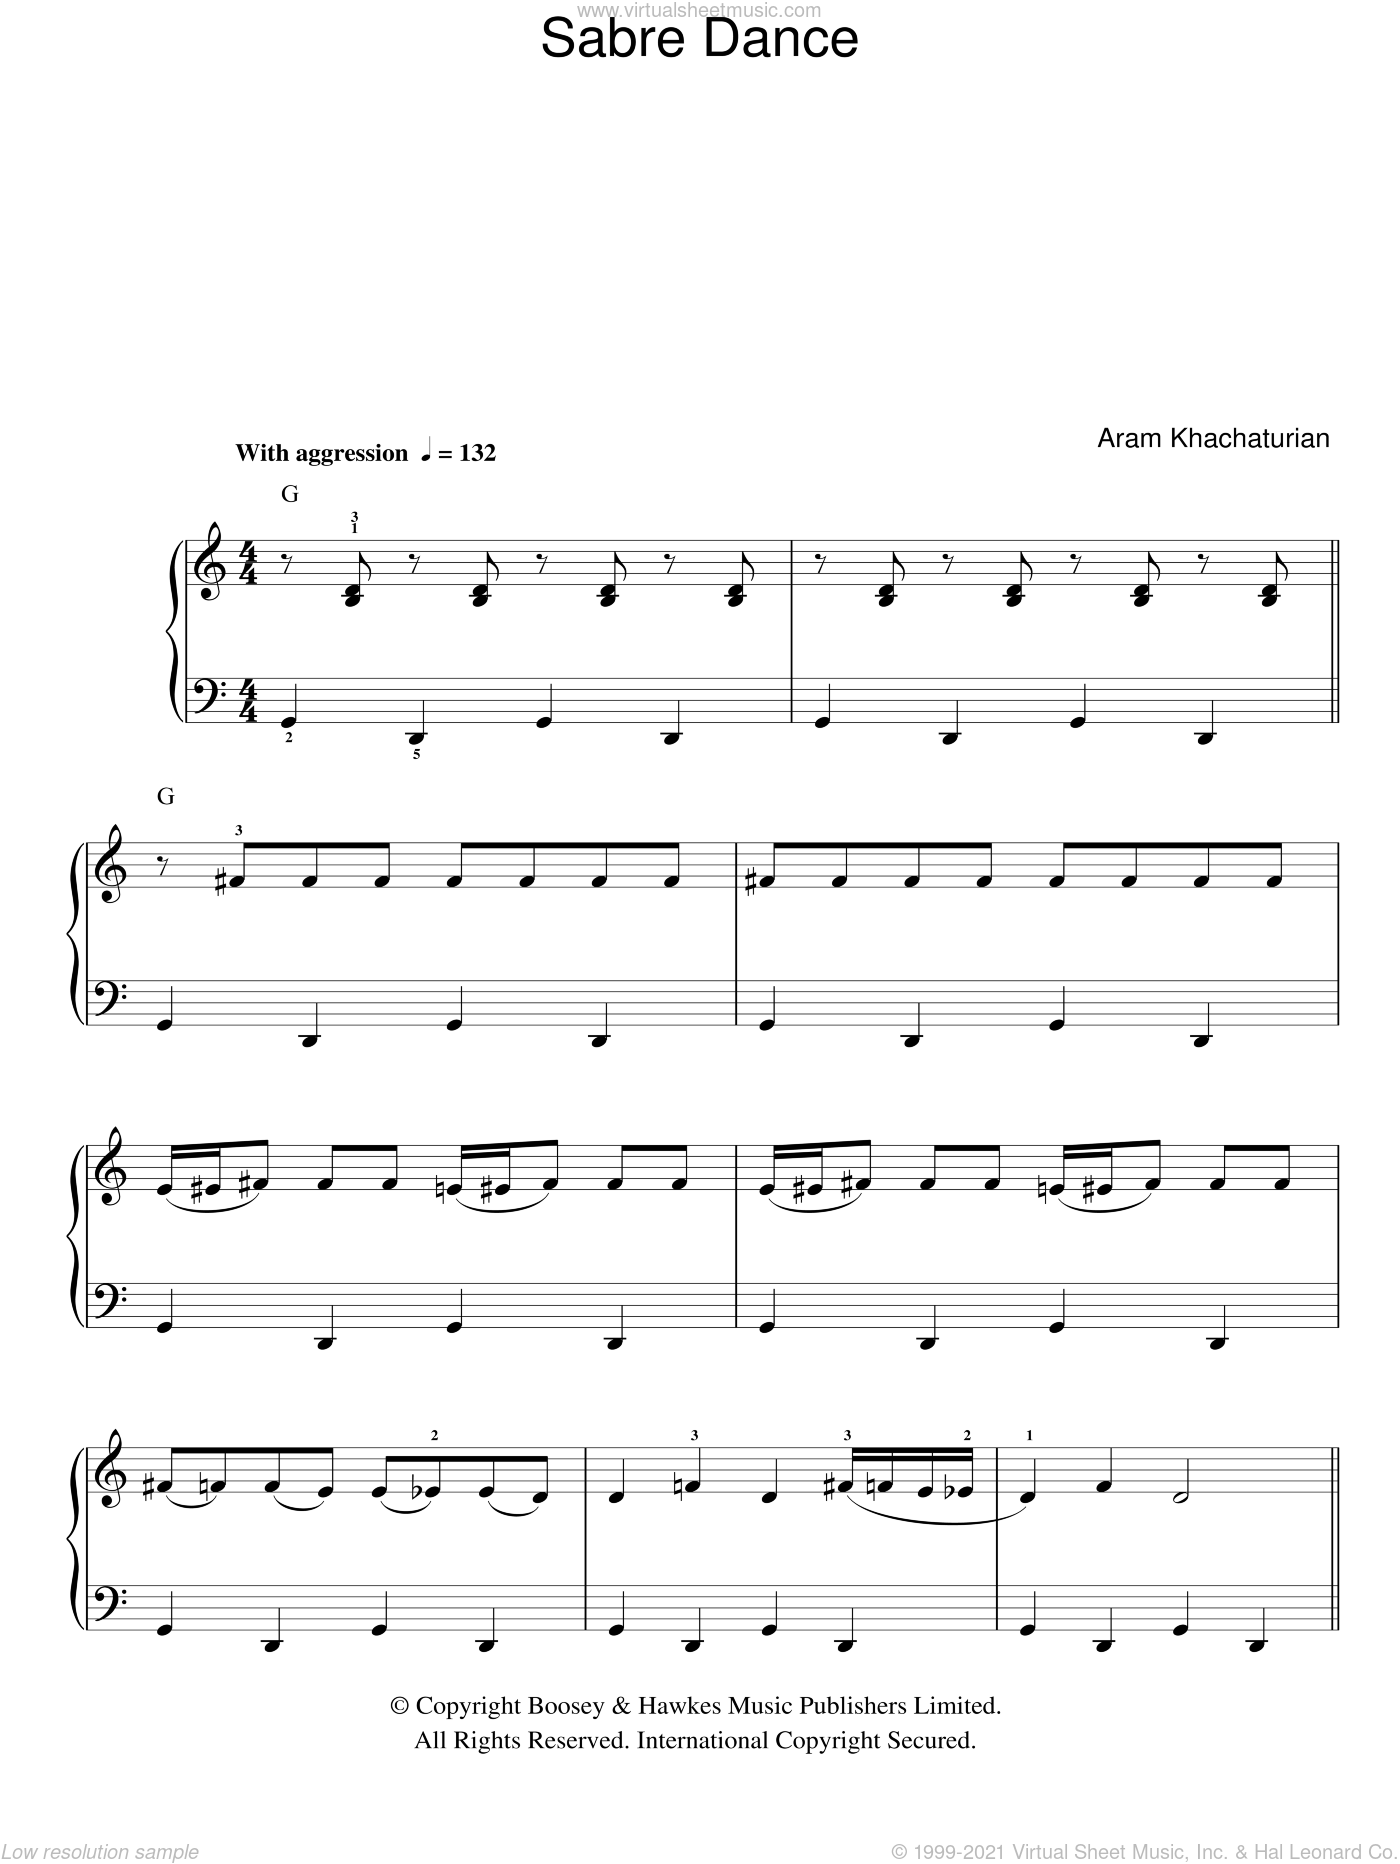 Sabre Dance sheet music for piano solo (chords) by Aram Khachaturian